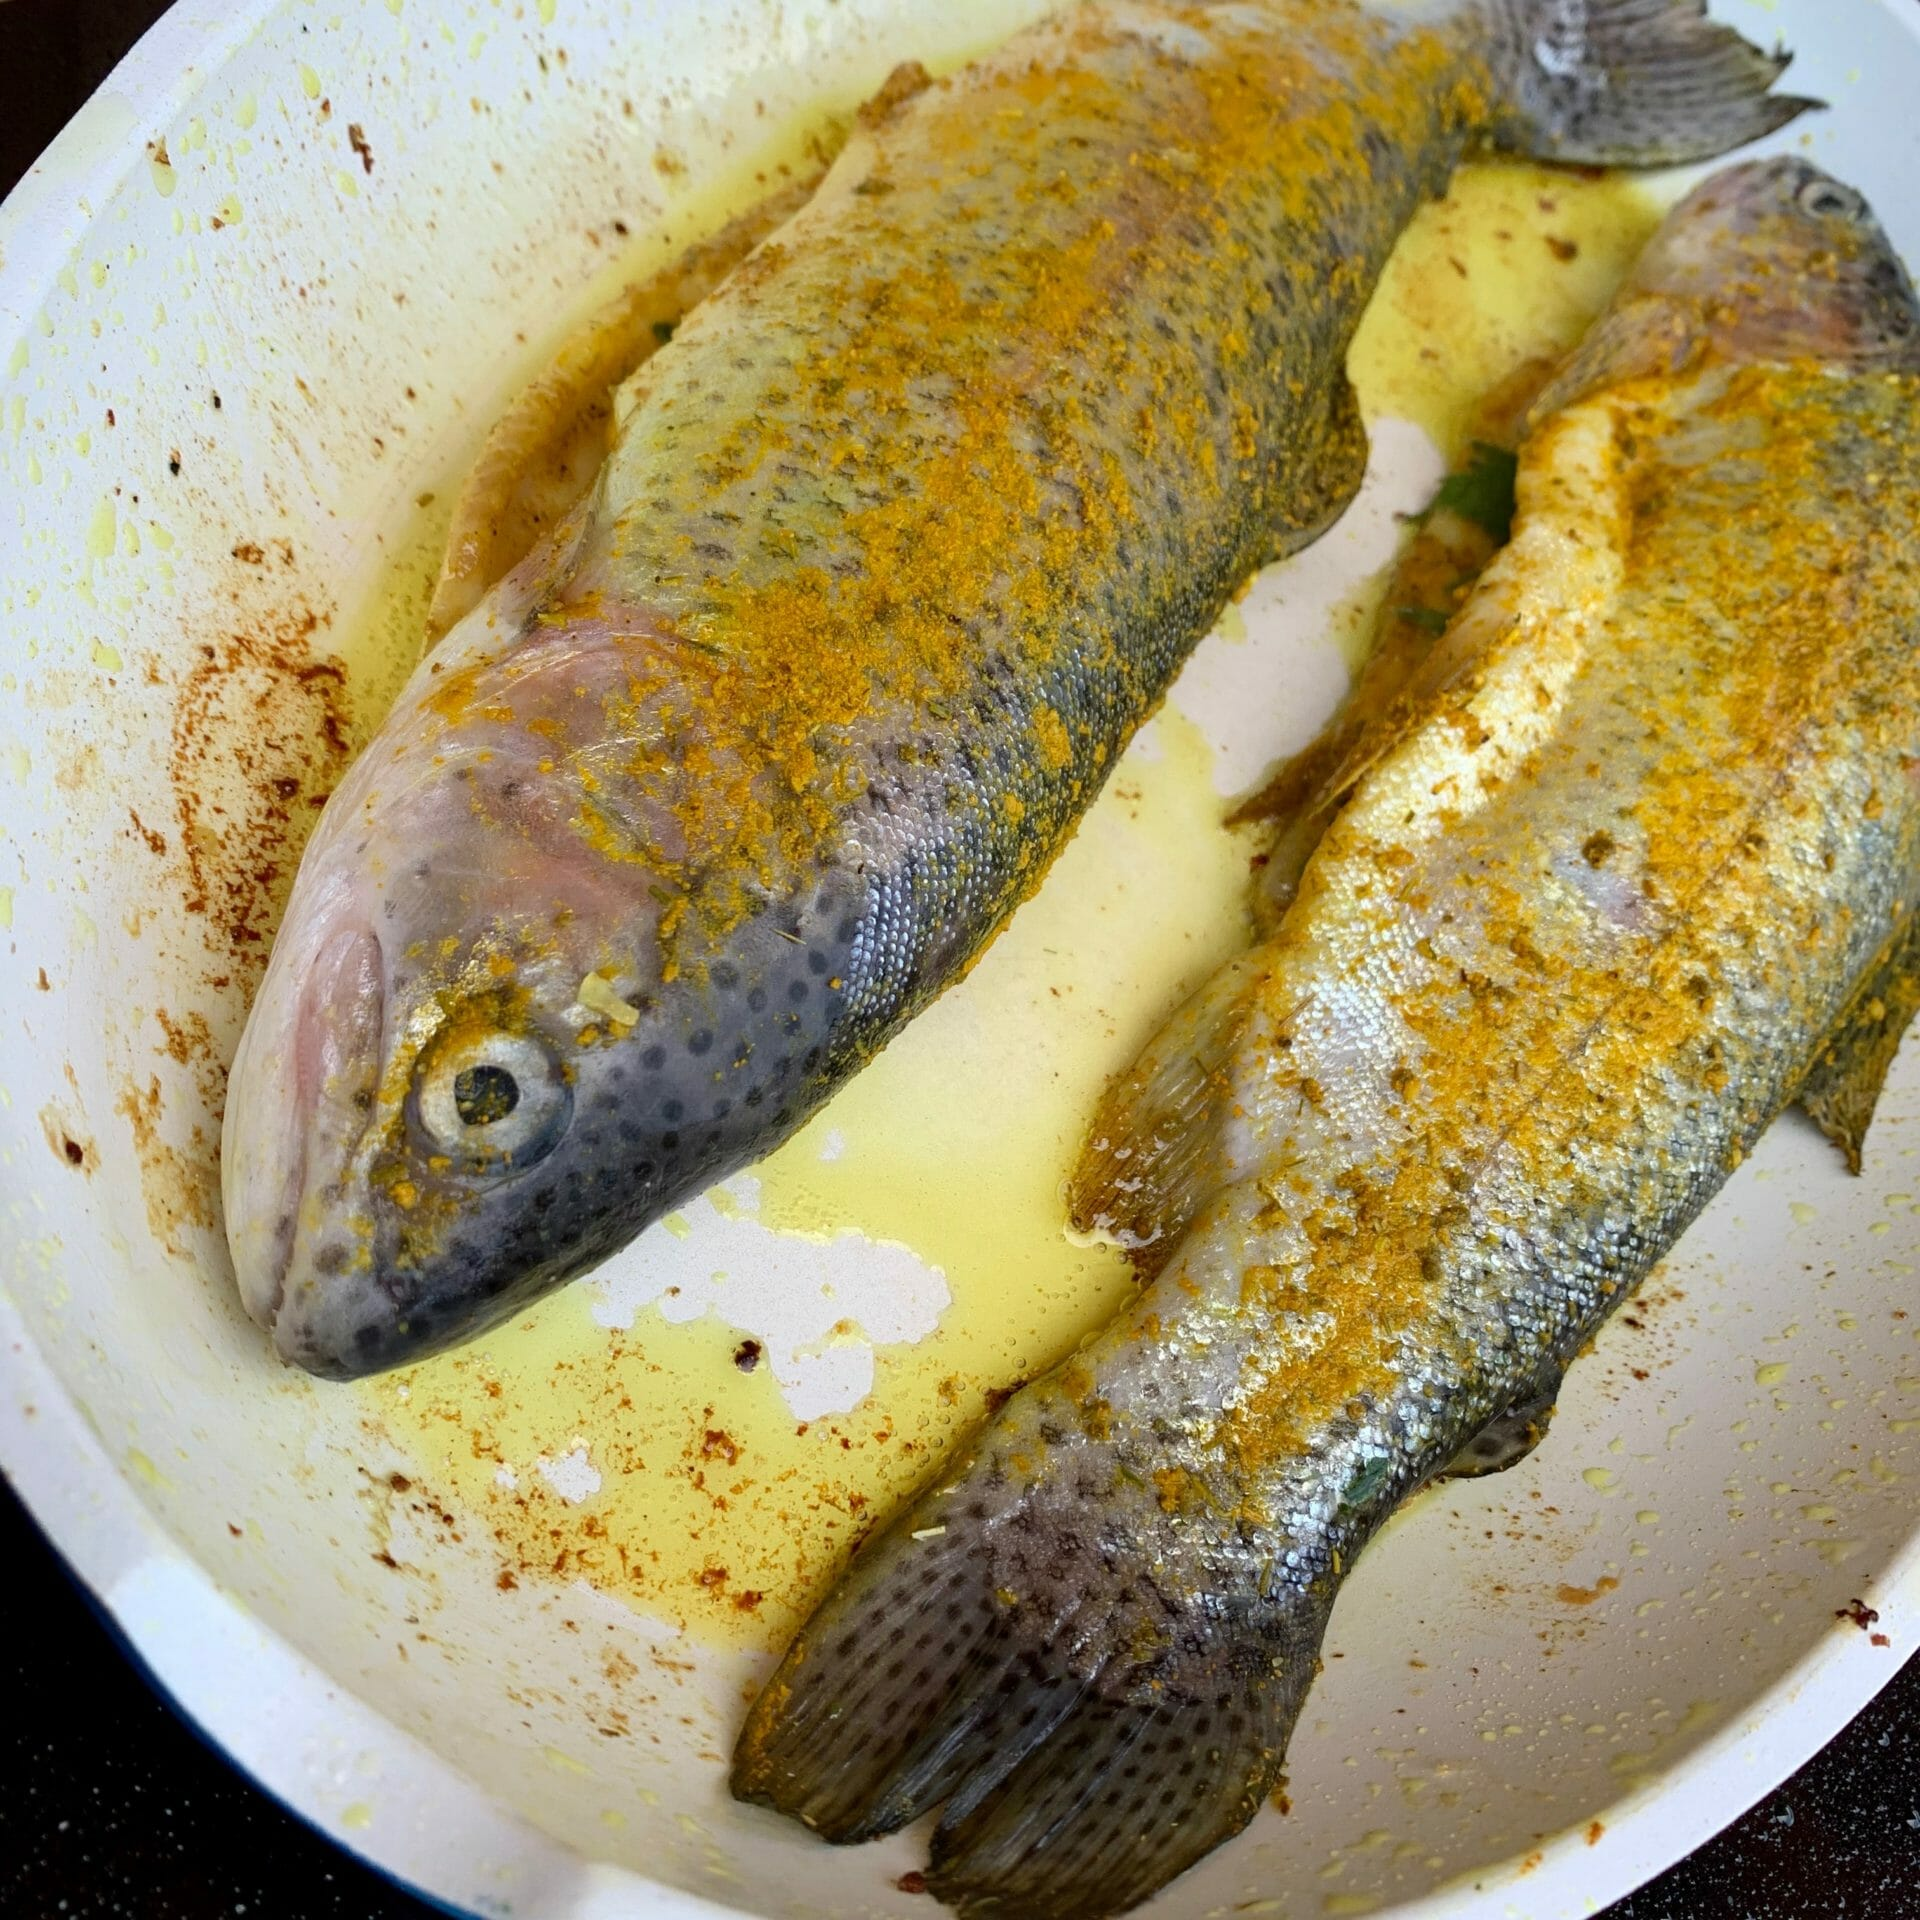 Grilled trout my grandfather caught